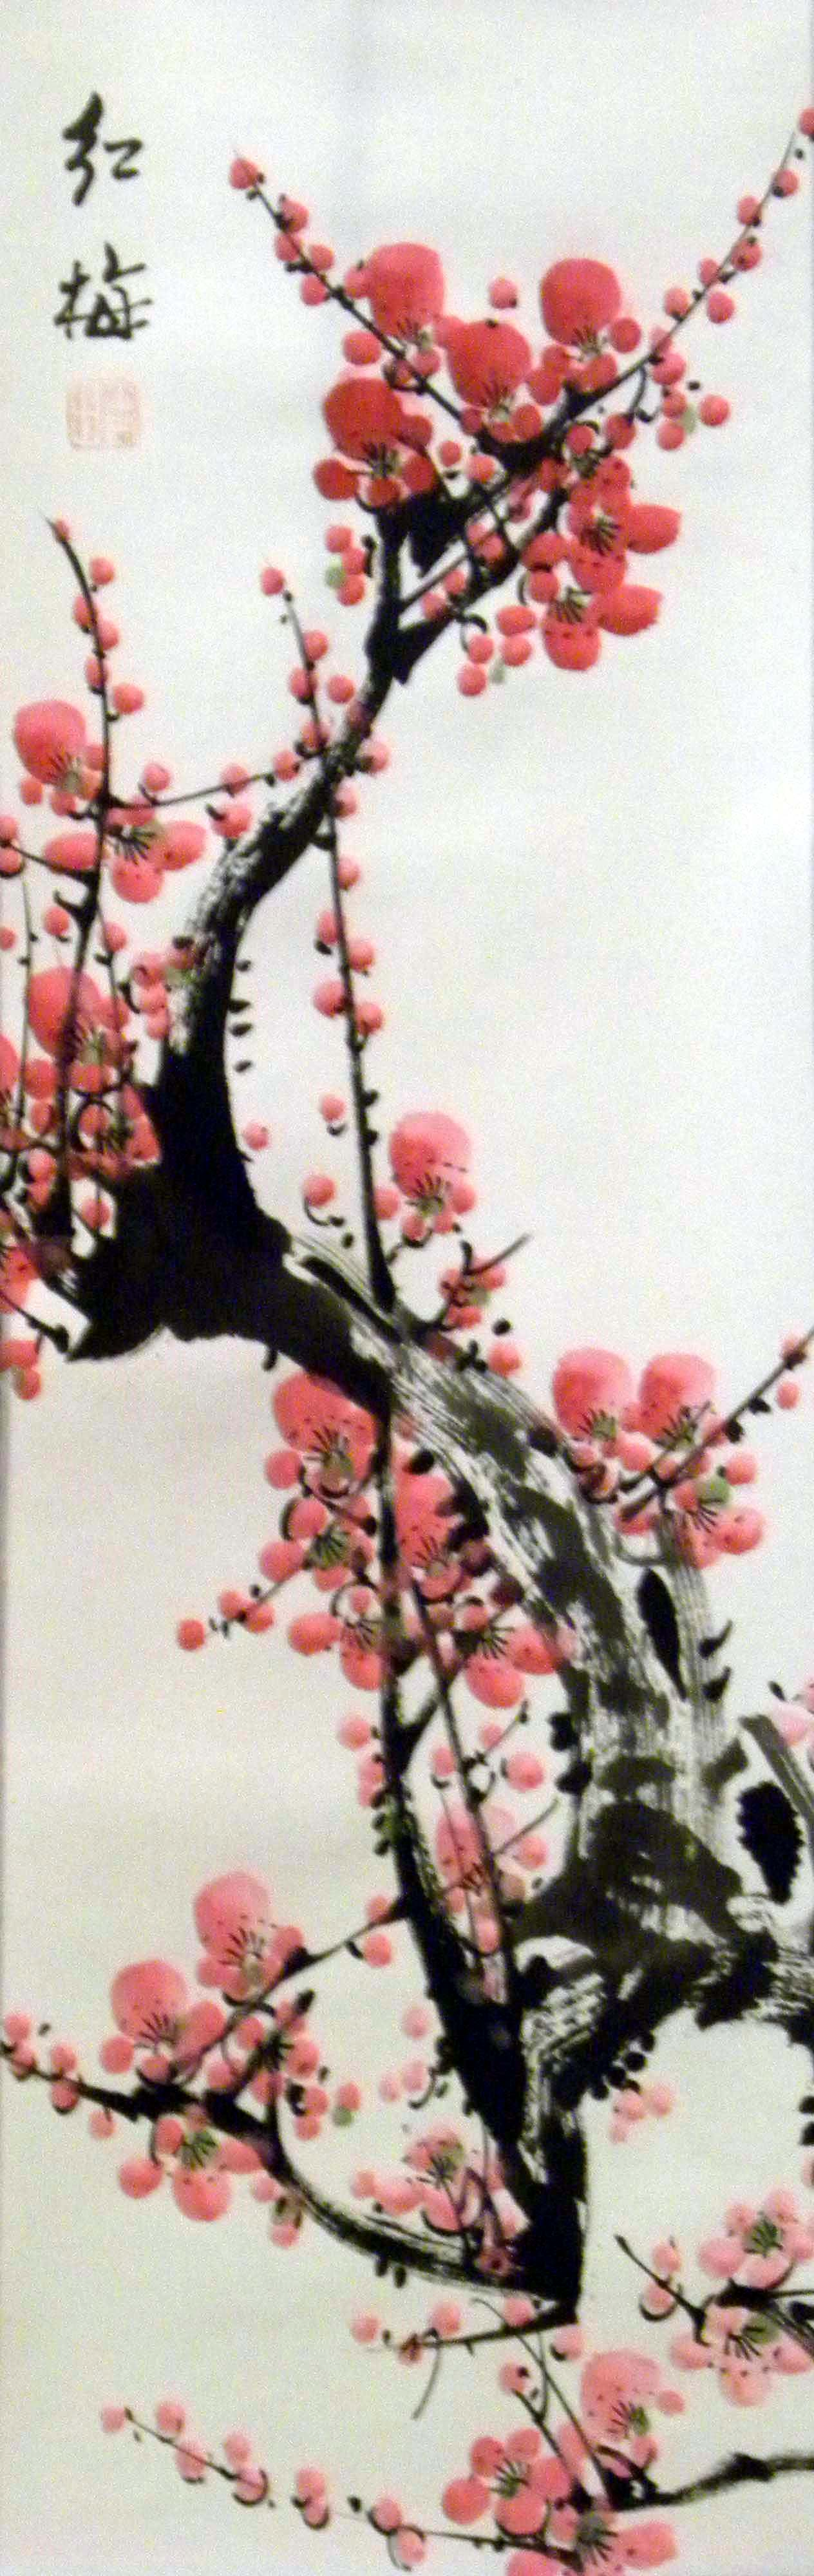 cherry blossom in japanese art and Several thousand gathered in huntington beach sunday for the city's fifth annual cherry blossom festival, which features japanese crafts, cultural exhibits, music, dance and food.